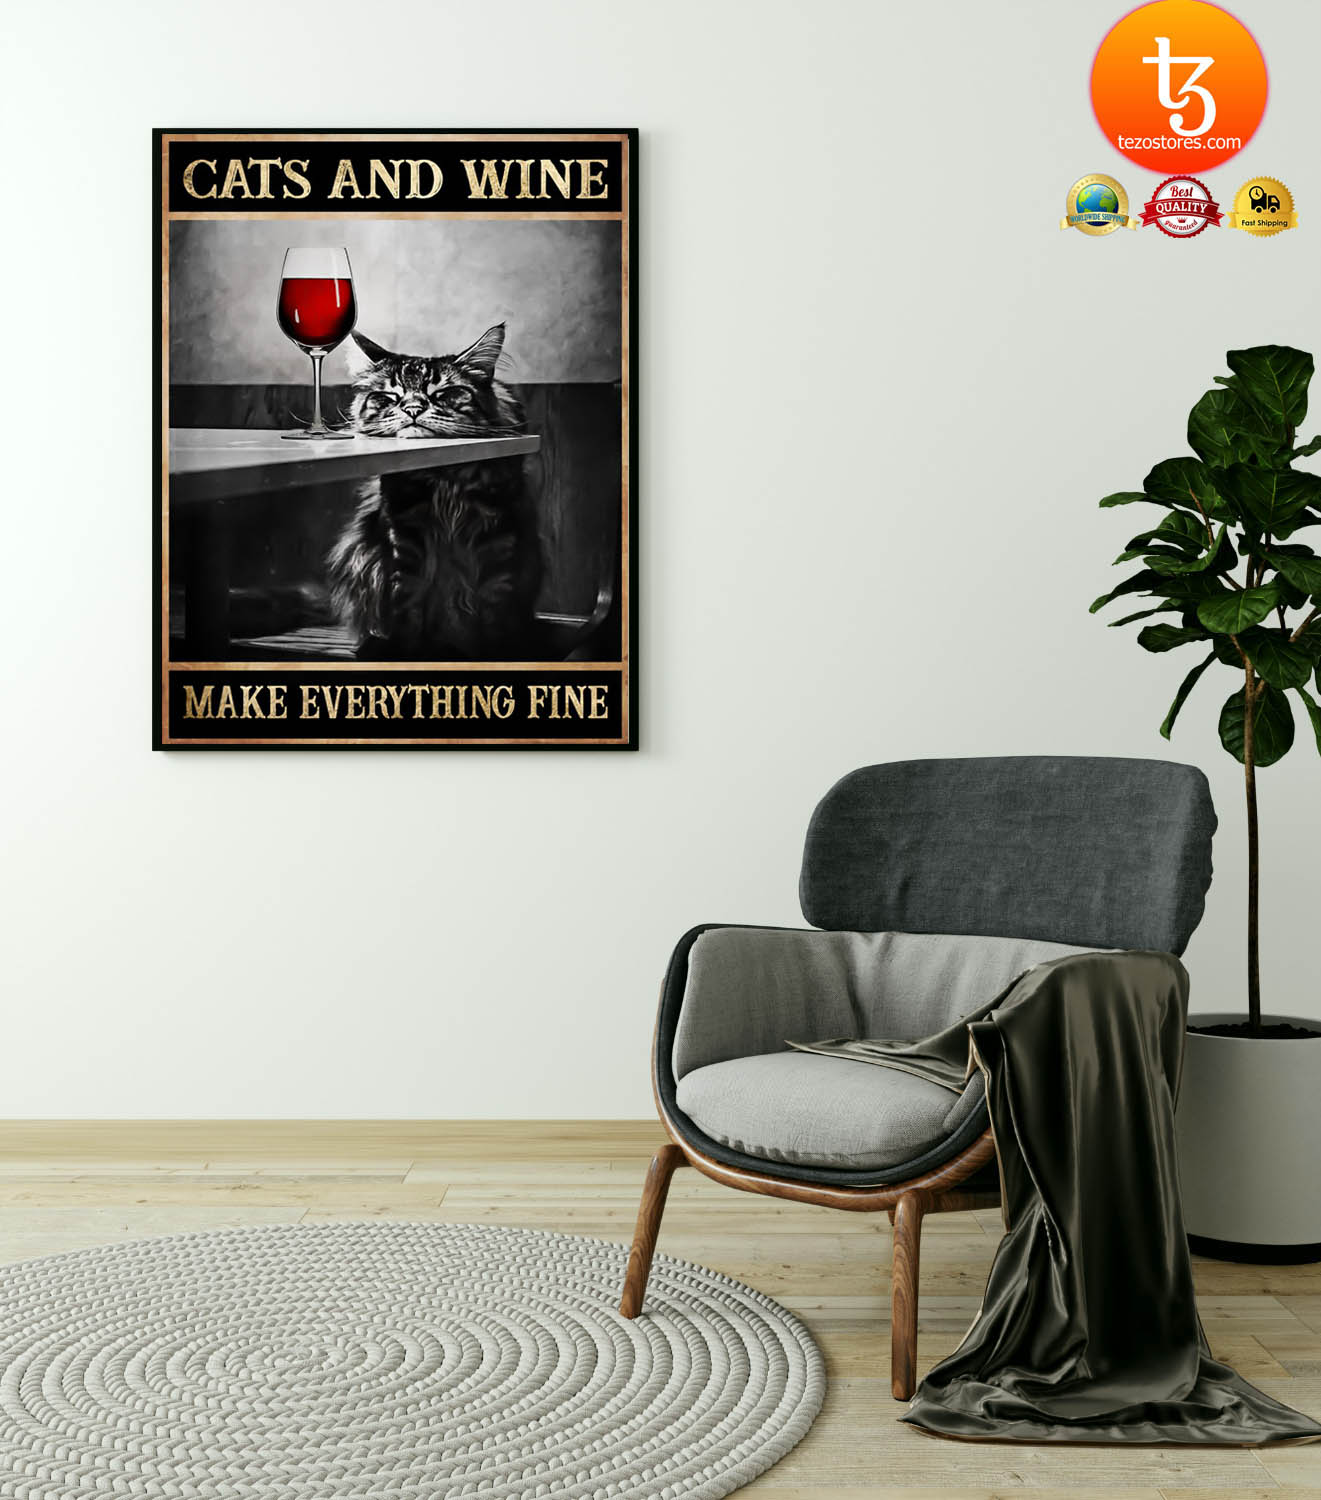 Cats and wine make everything fine poster 4